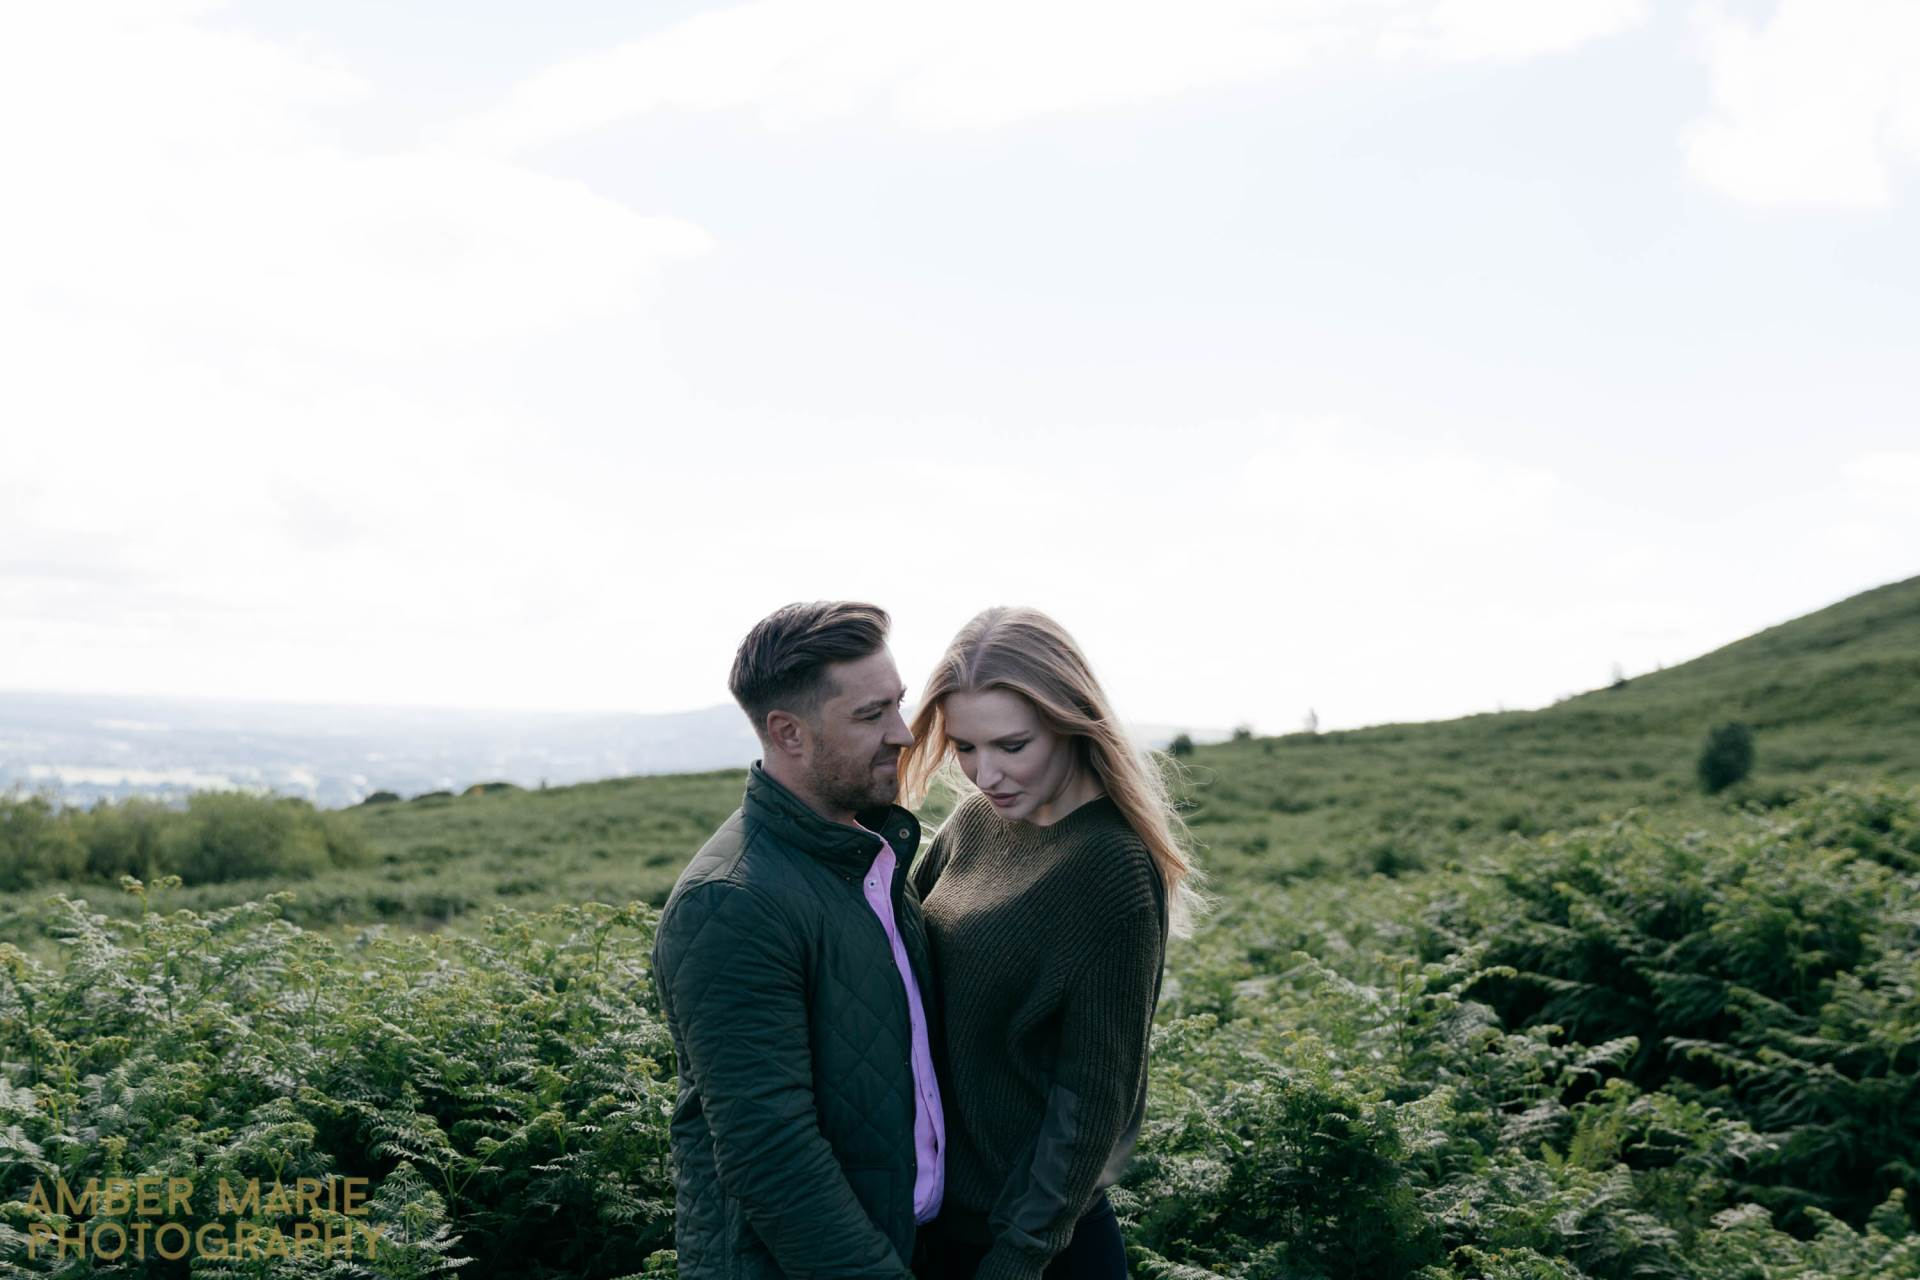 Should you have an engagement shoot before our wedding day